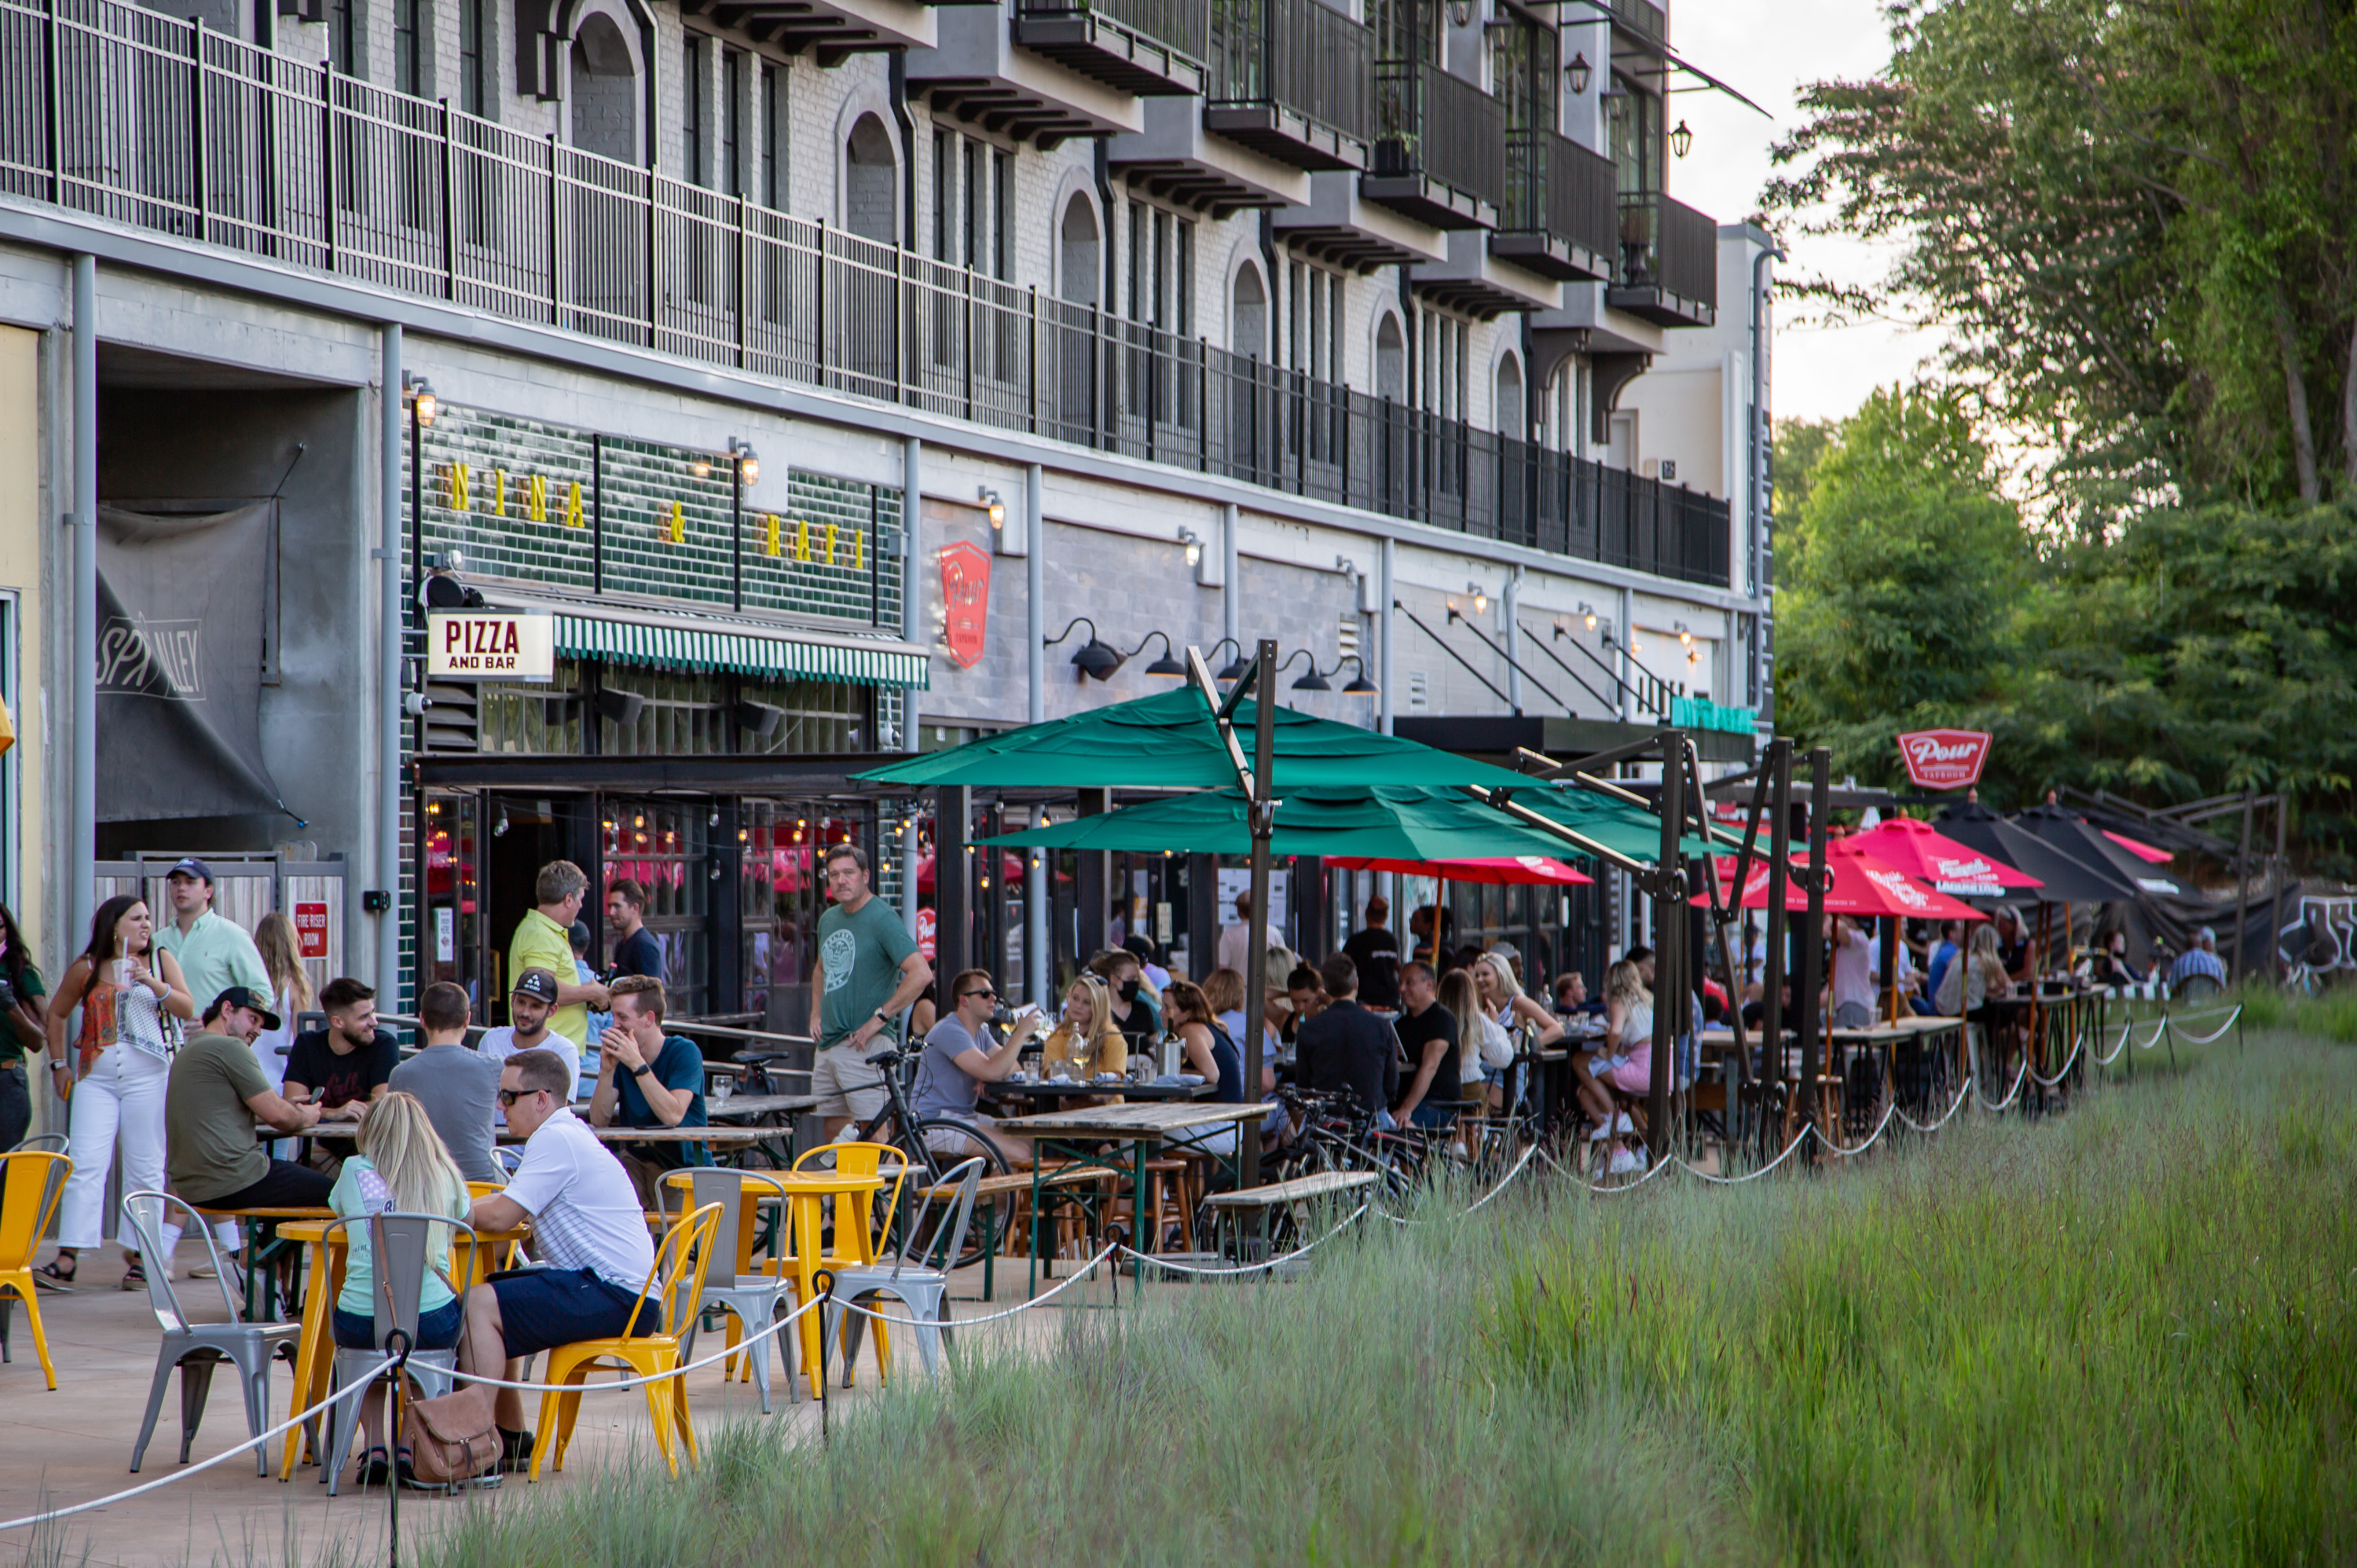 Diners eating on restaurant patios in the late afternoon in June 2020 at SPX Alley on the Eastside Beltline in Atlanta